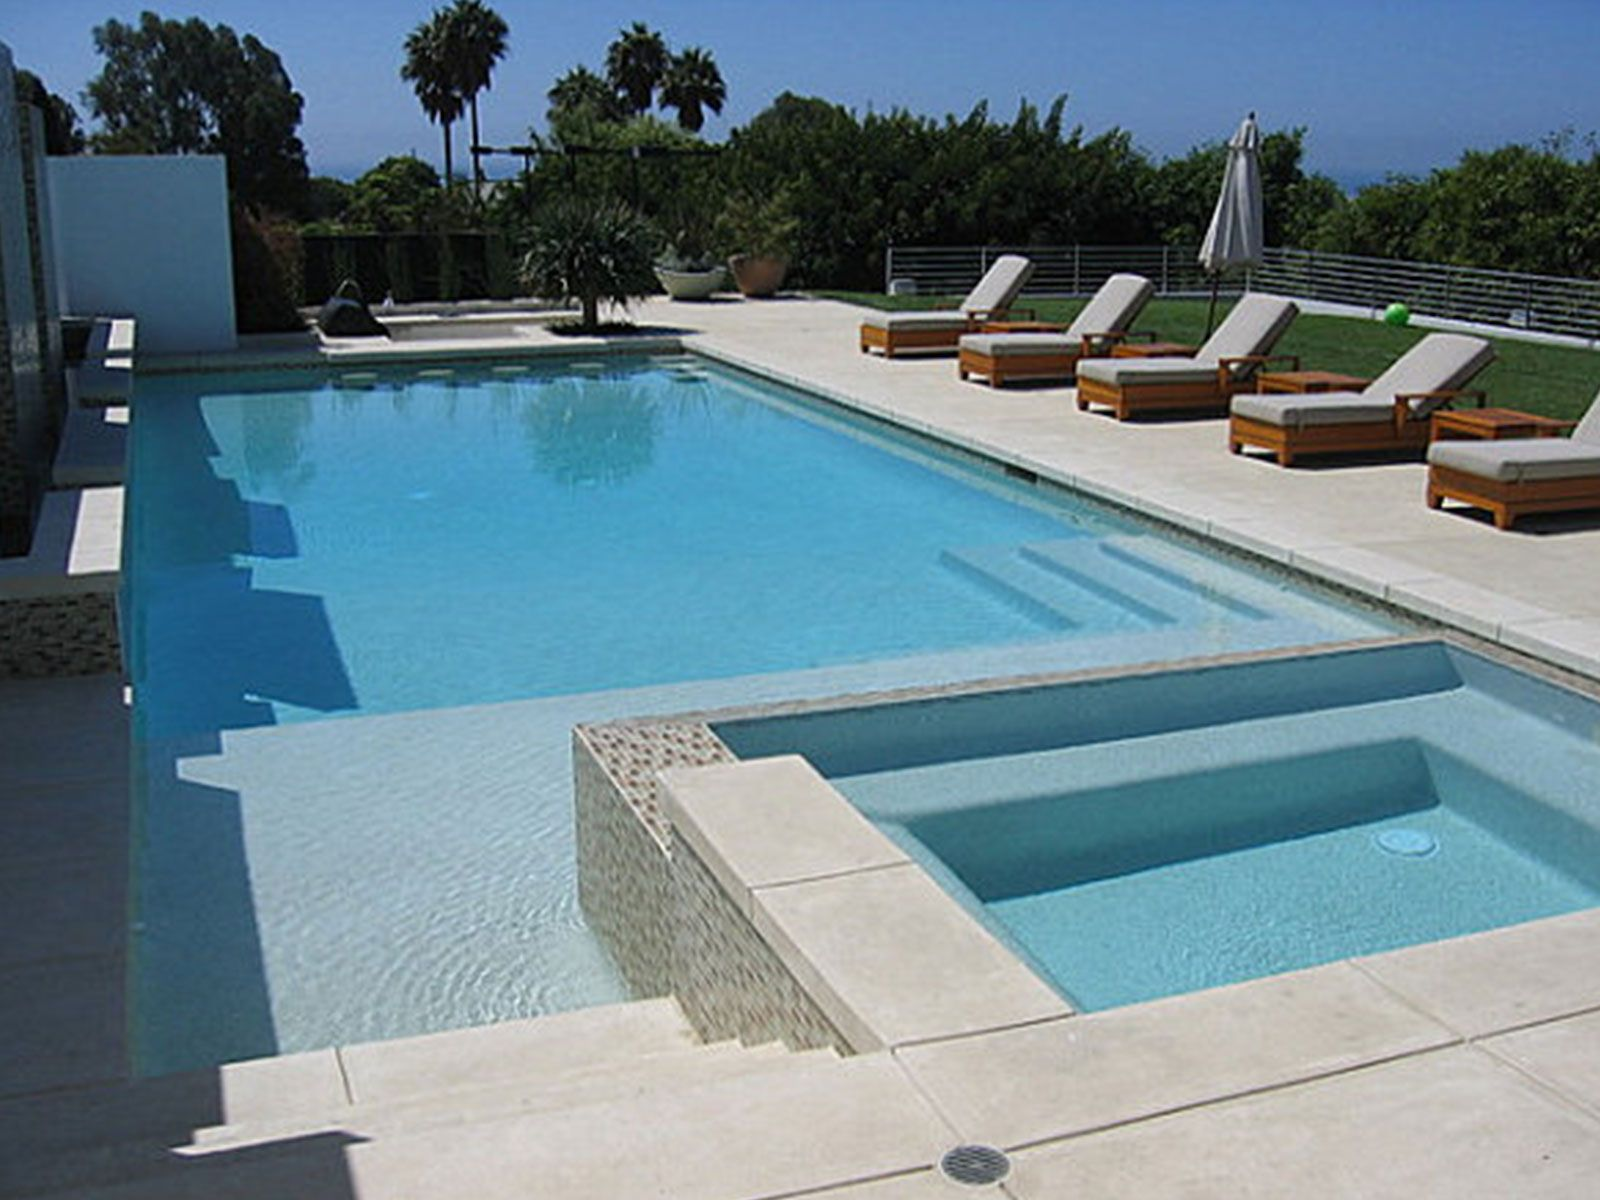 Simple swimming pool design image modern creative swimming for Swimming pool surrounds design